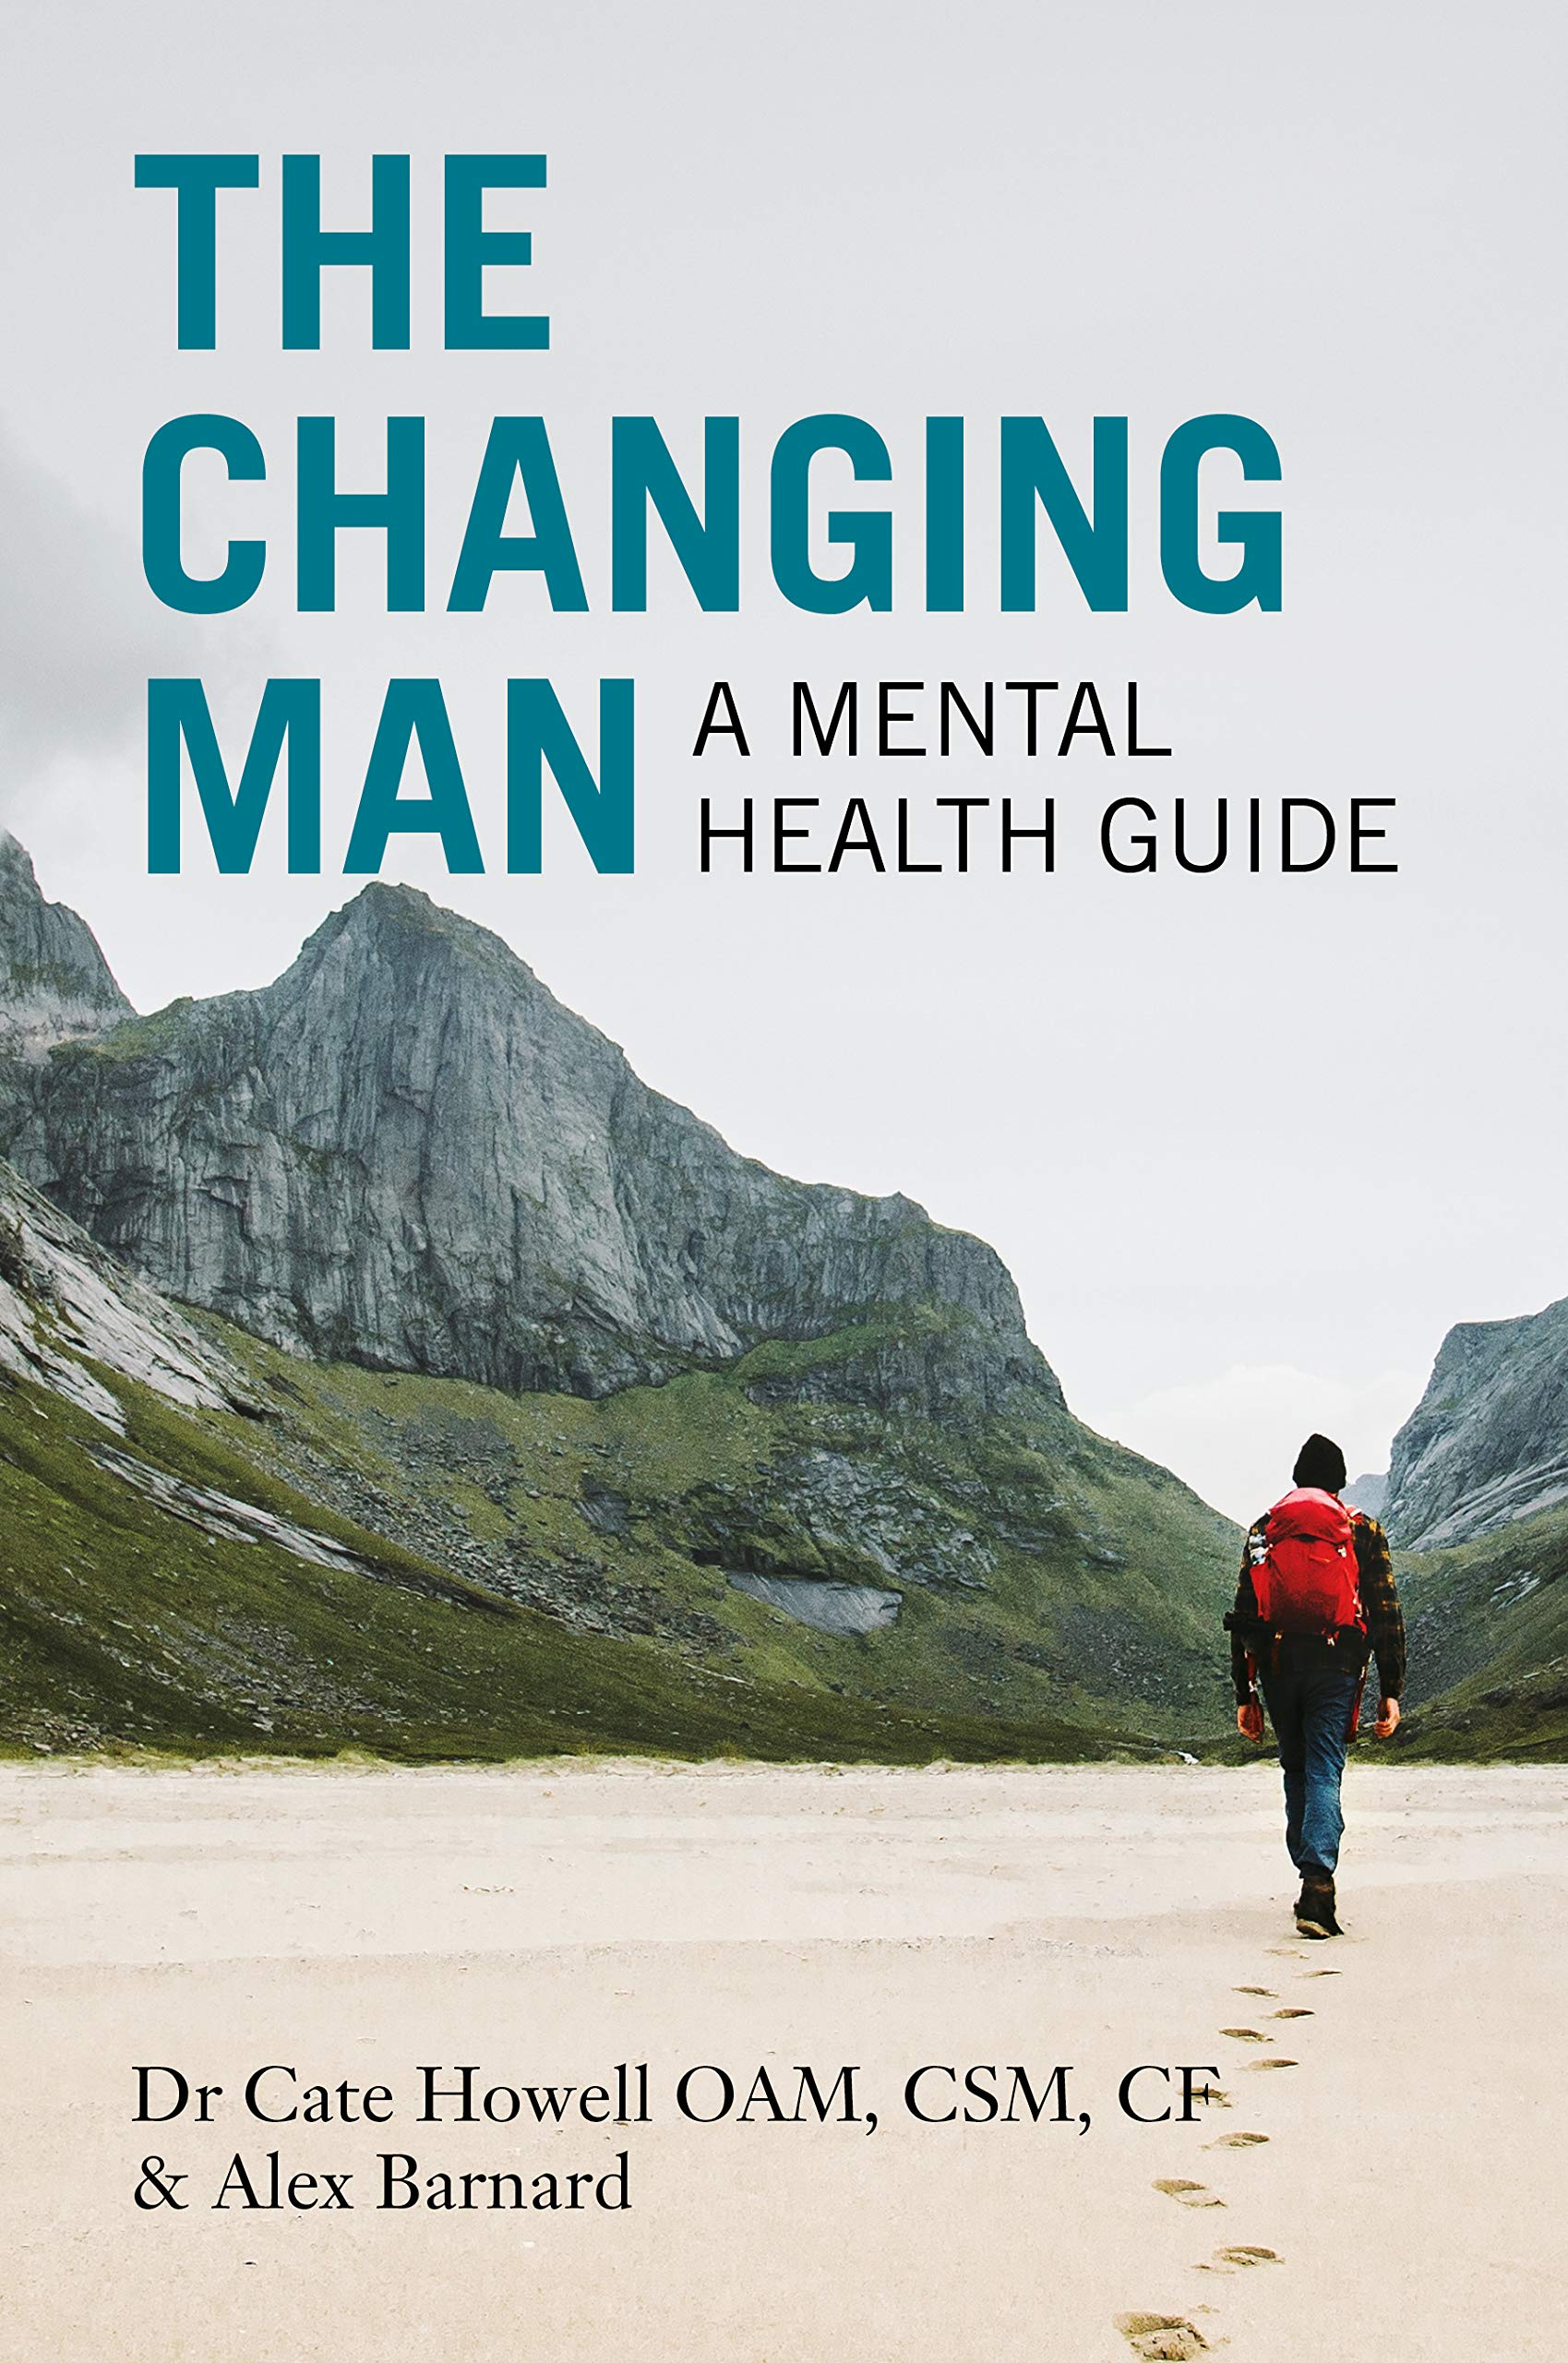 The Changing Man: A Mental Health Guide: Howell, Cate, Barnard, Alex:  9781925820355: Amazon.com: Books